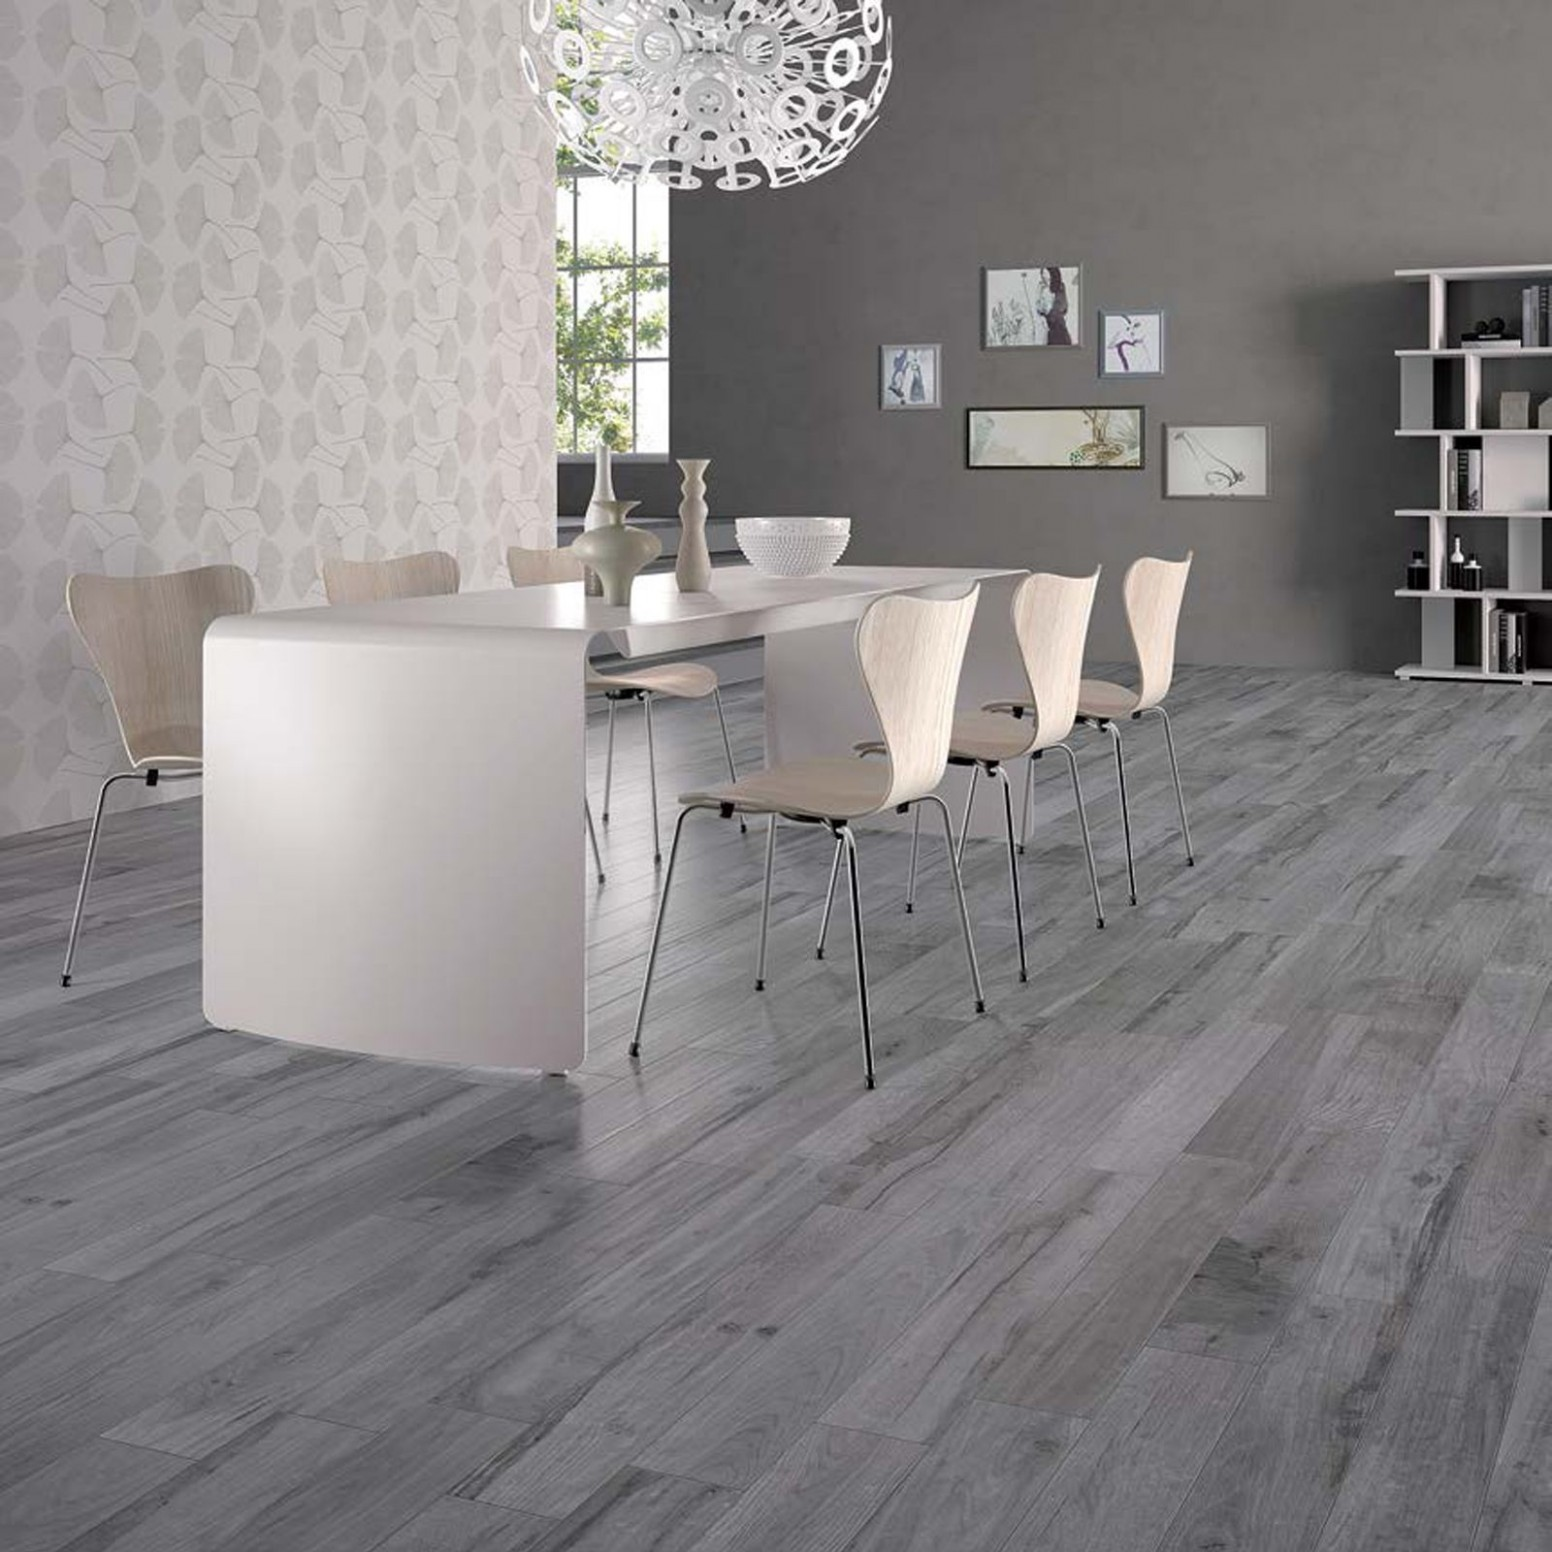 Modern dining area with tiles from Soleras collection by ABK  - Dining Room Tile Ideas